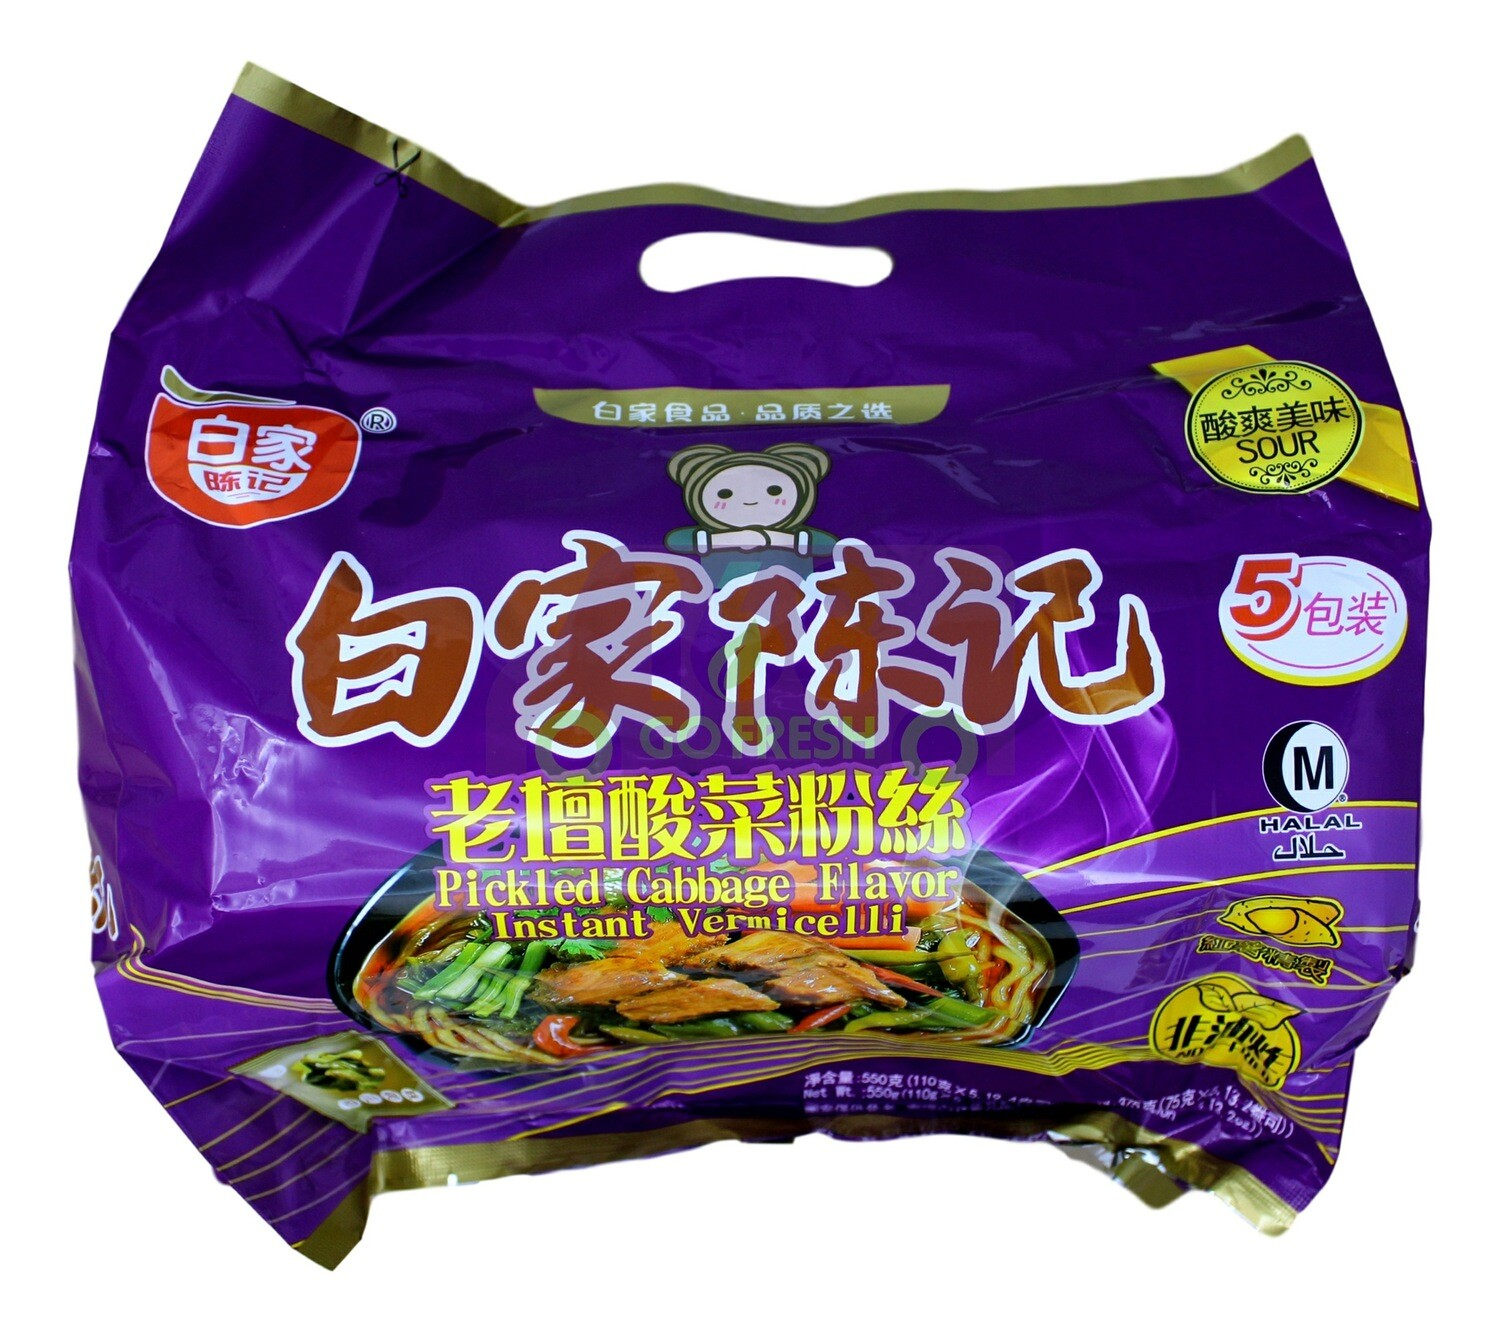 PICKLED CABBAGE FLAVOR INSTANT VERMICELLI 白家 陈记 老坛酸菜粉丝(5小包)